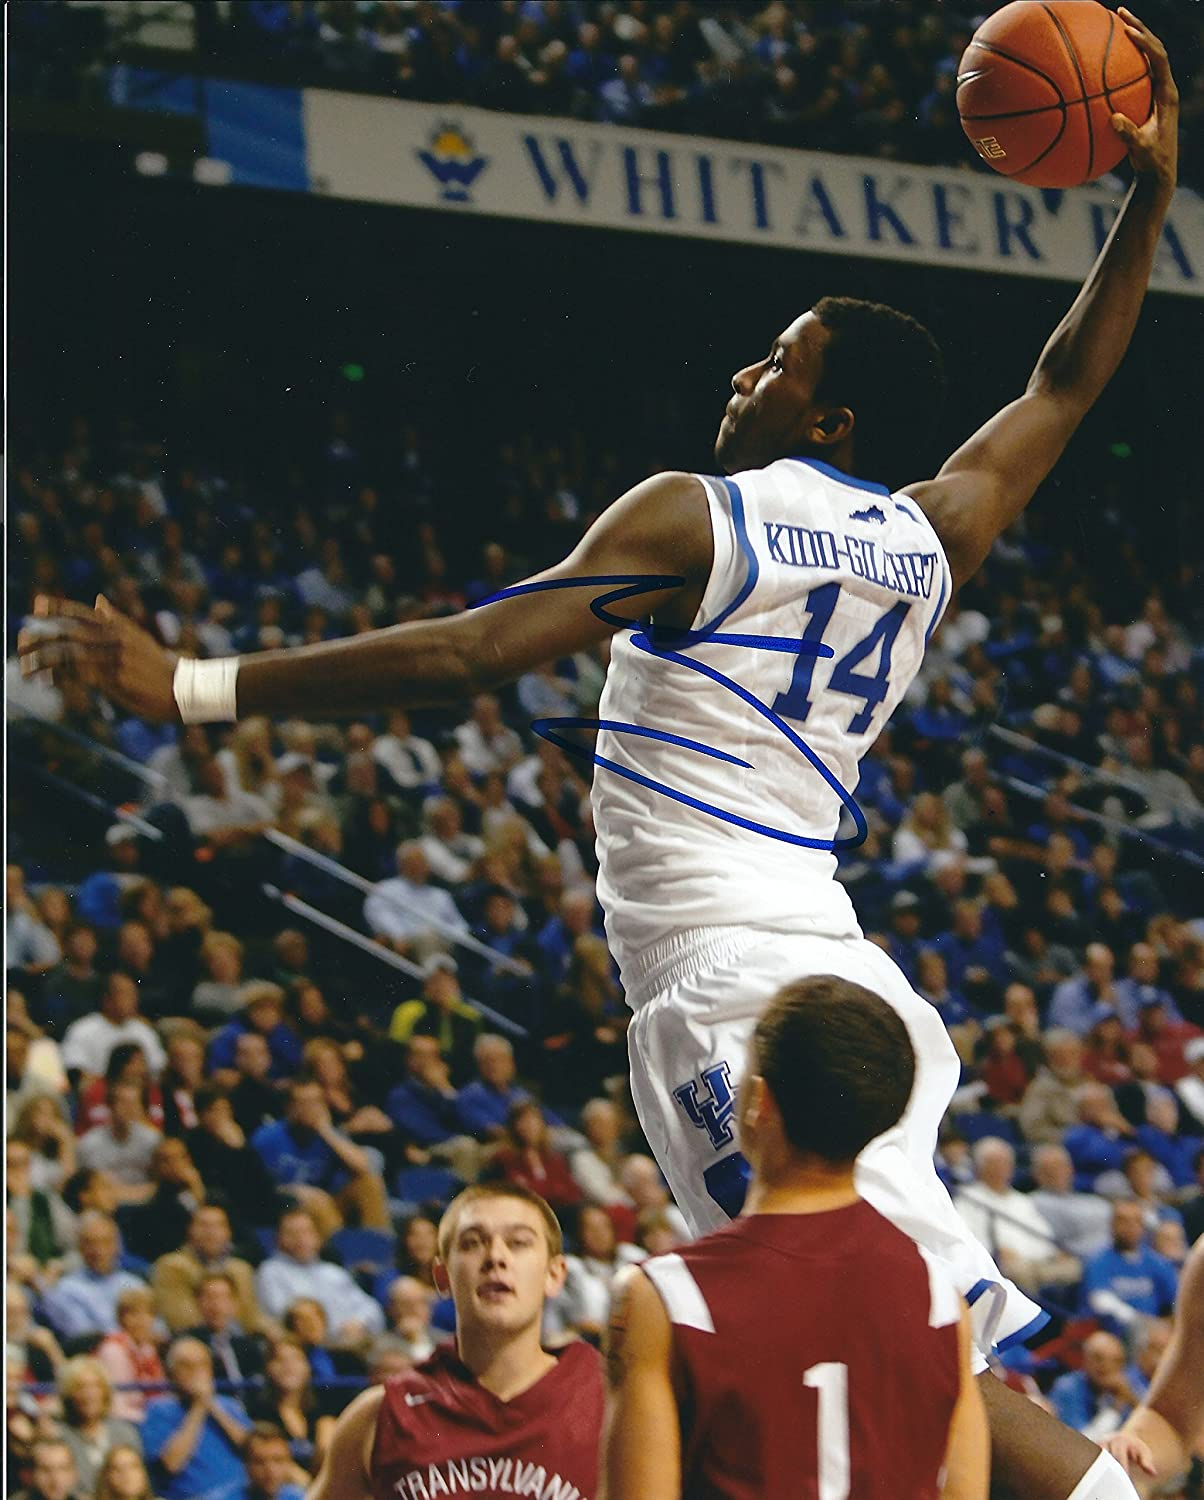 15785f55e57 Autographed Michael Kidd-Gilchrist University of Kentucky Wildcats 8x10  photo w COA at Amazon s Sports Collectibles Store